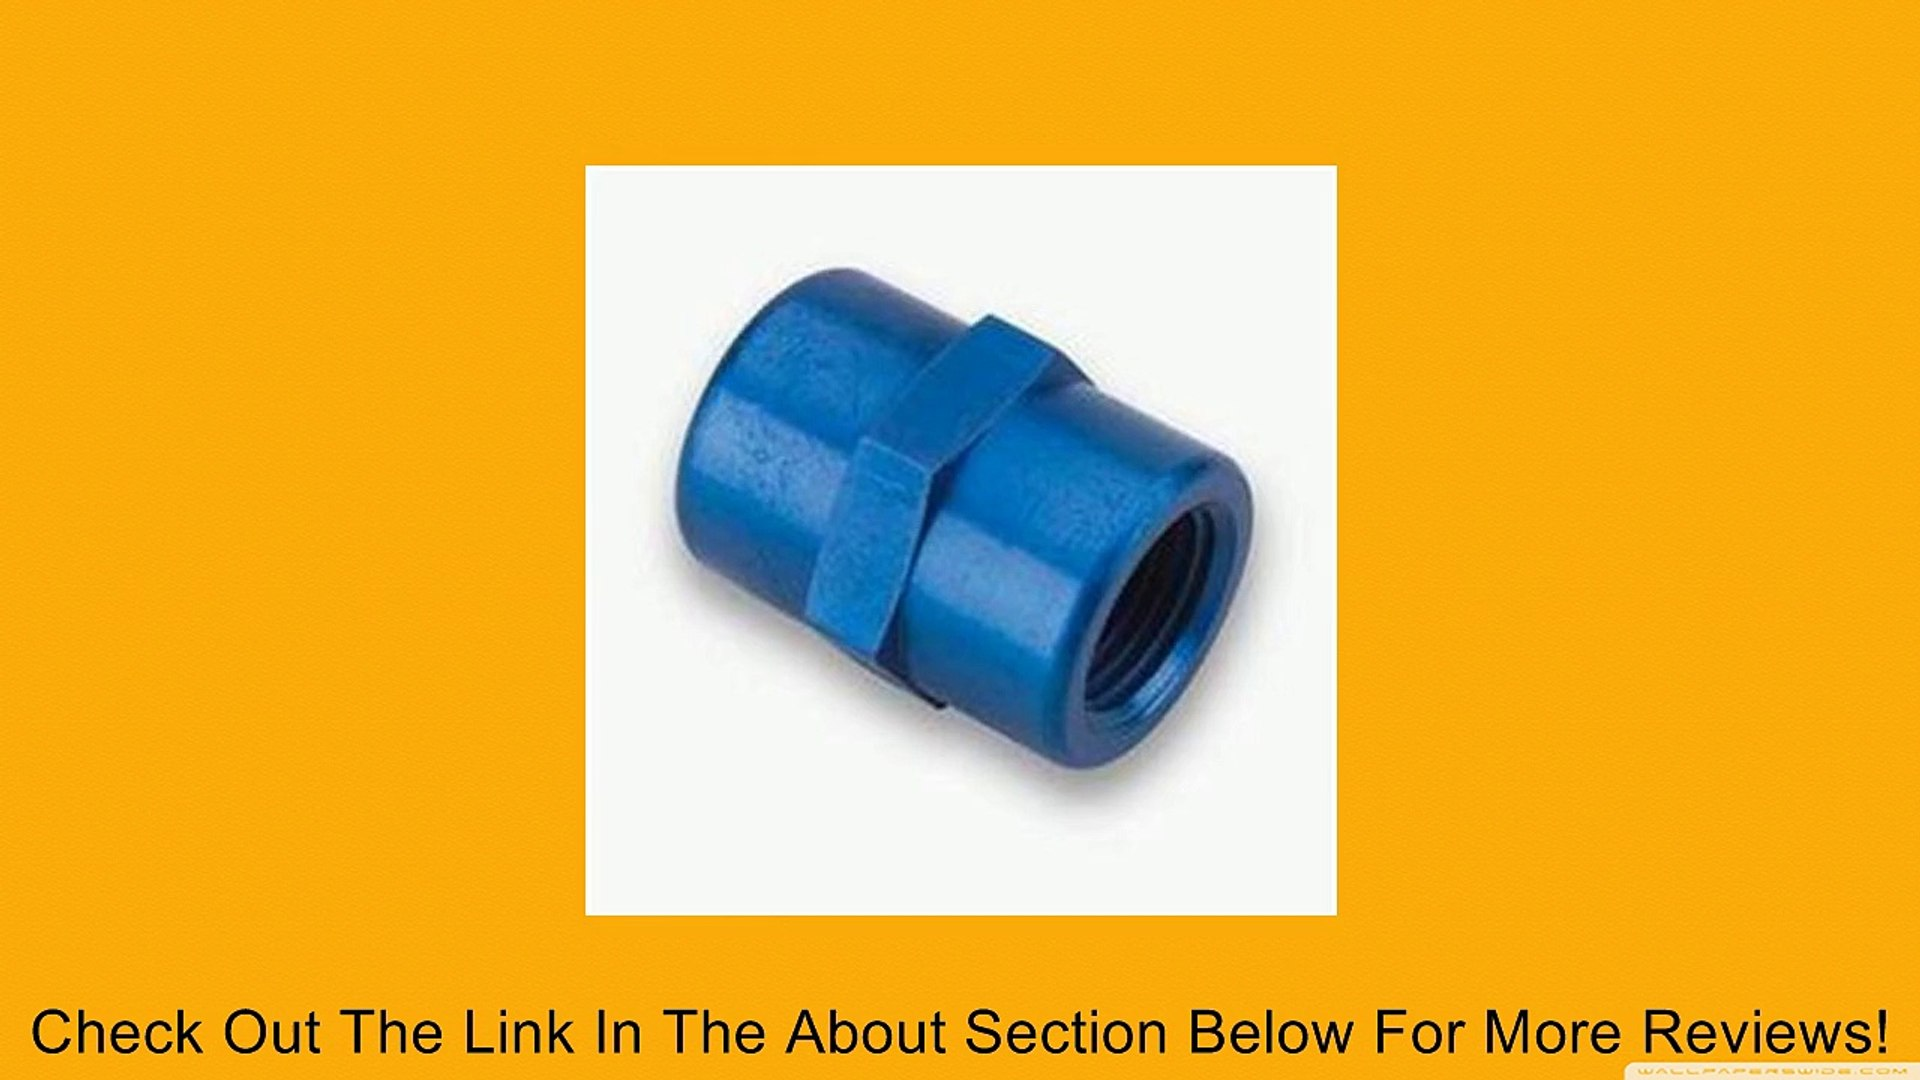 Earls 991203 Blue Anodized Aluminum 1//8 NPT Female to 3//8 NPT Male Pipe Bushing Reducer